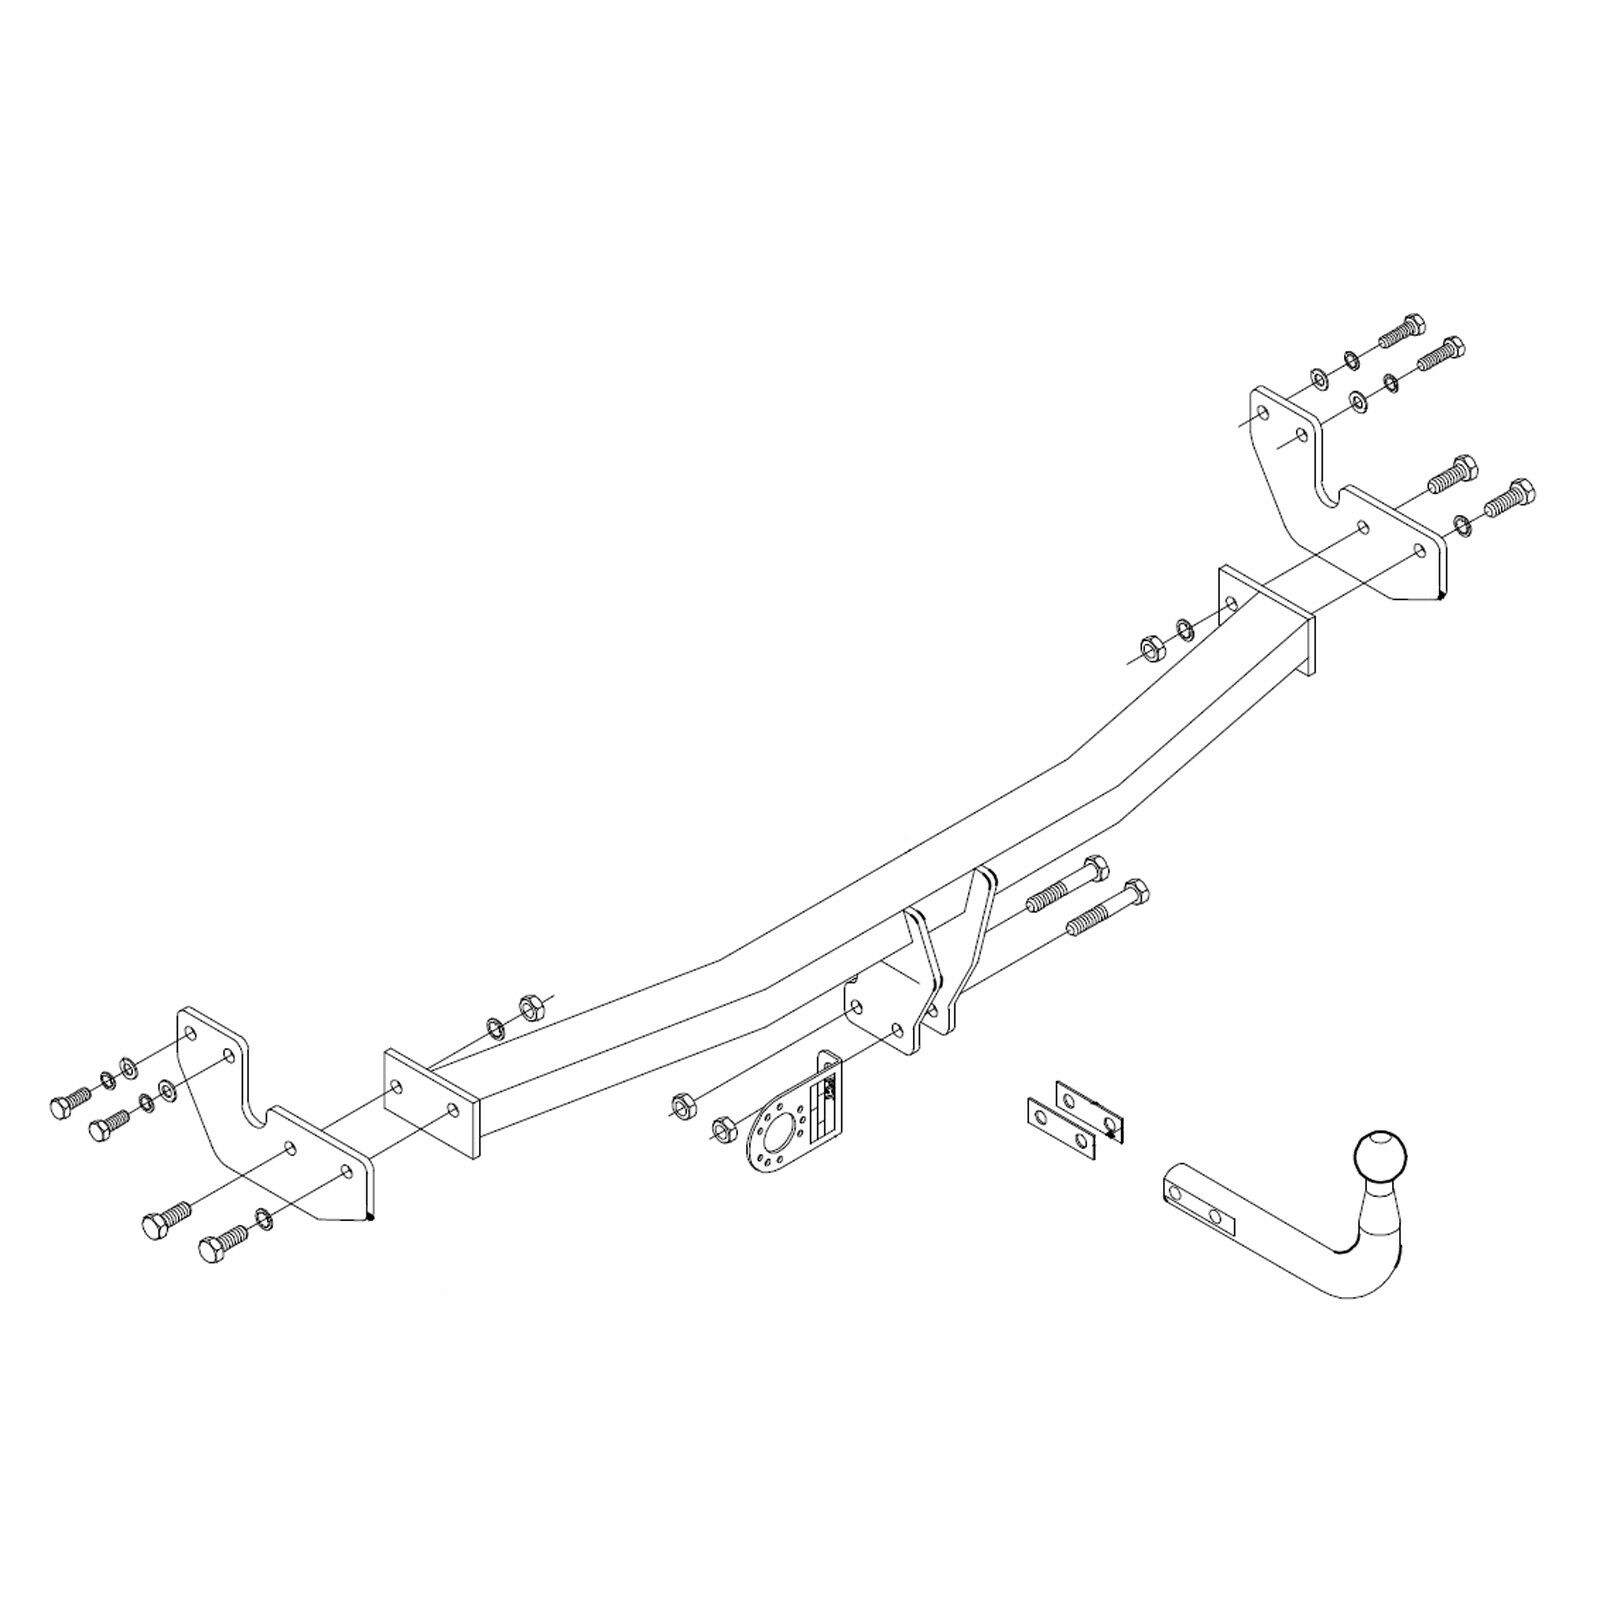 hight resolution of details about towbar for citroen c3 hatchback 2010 2016 swan neck tow bar